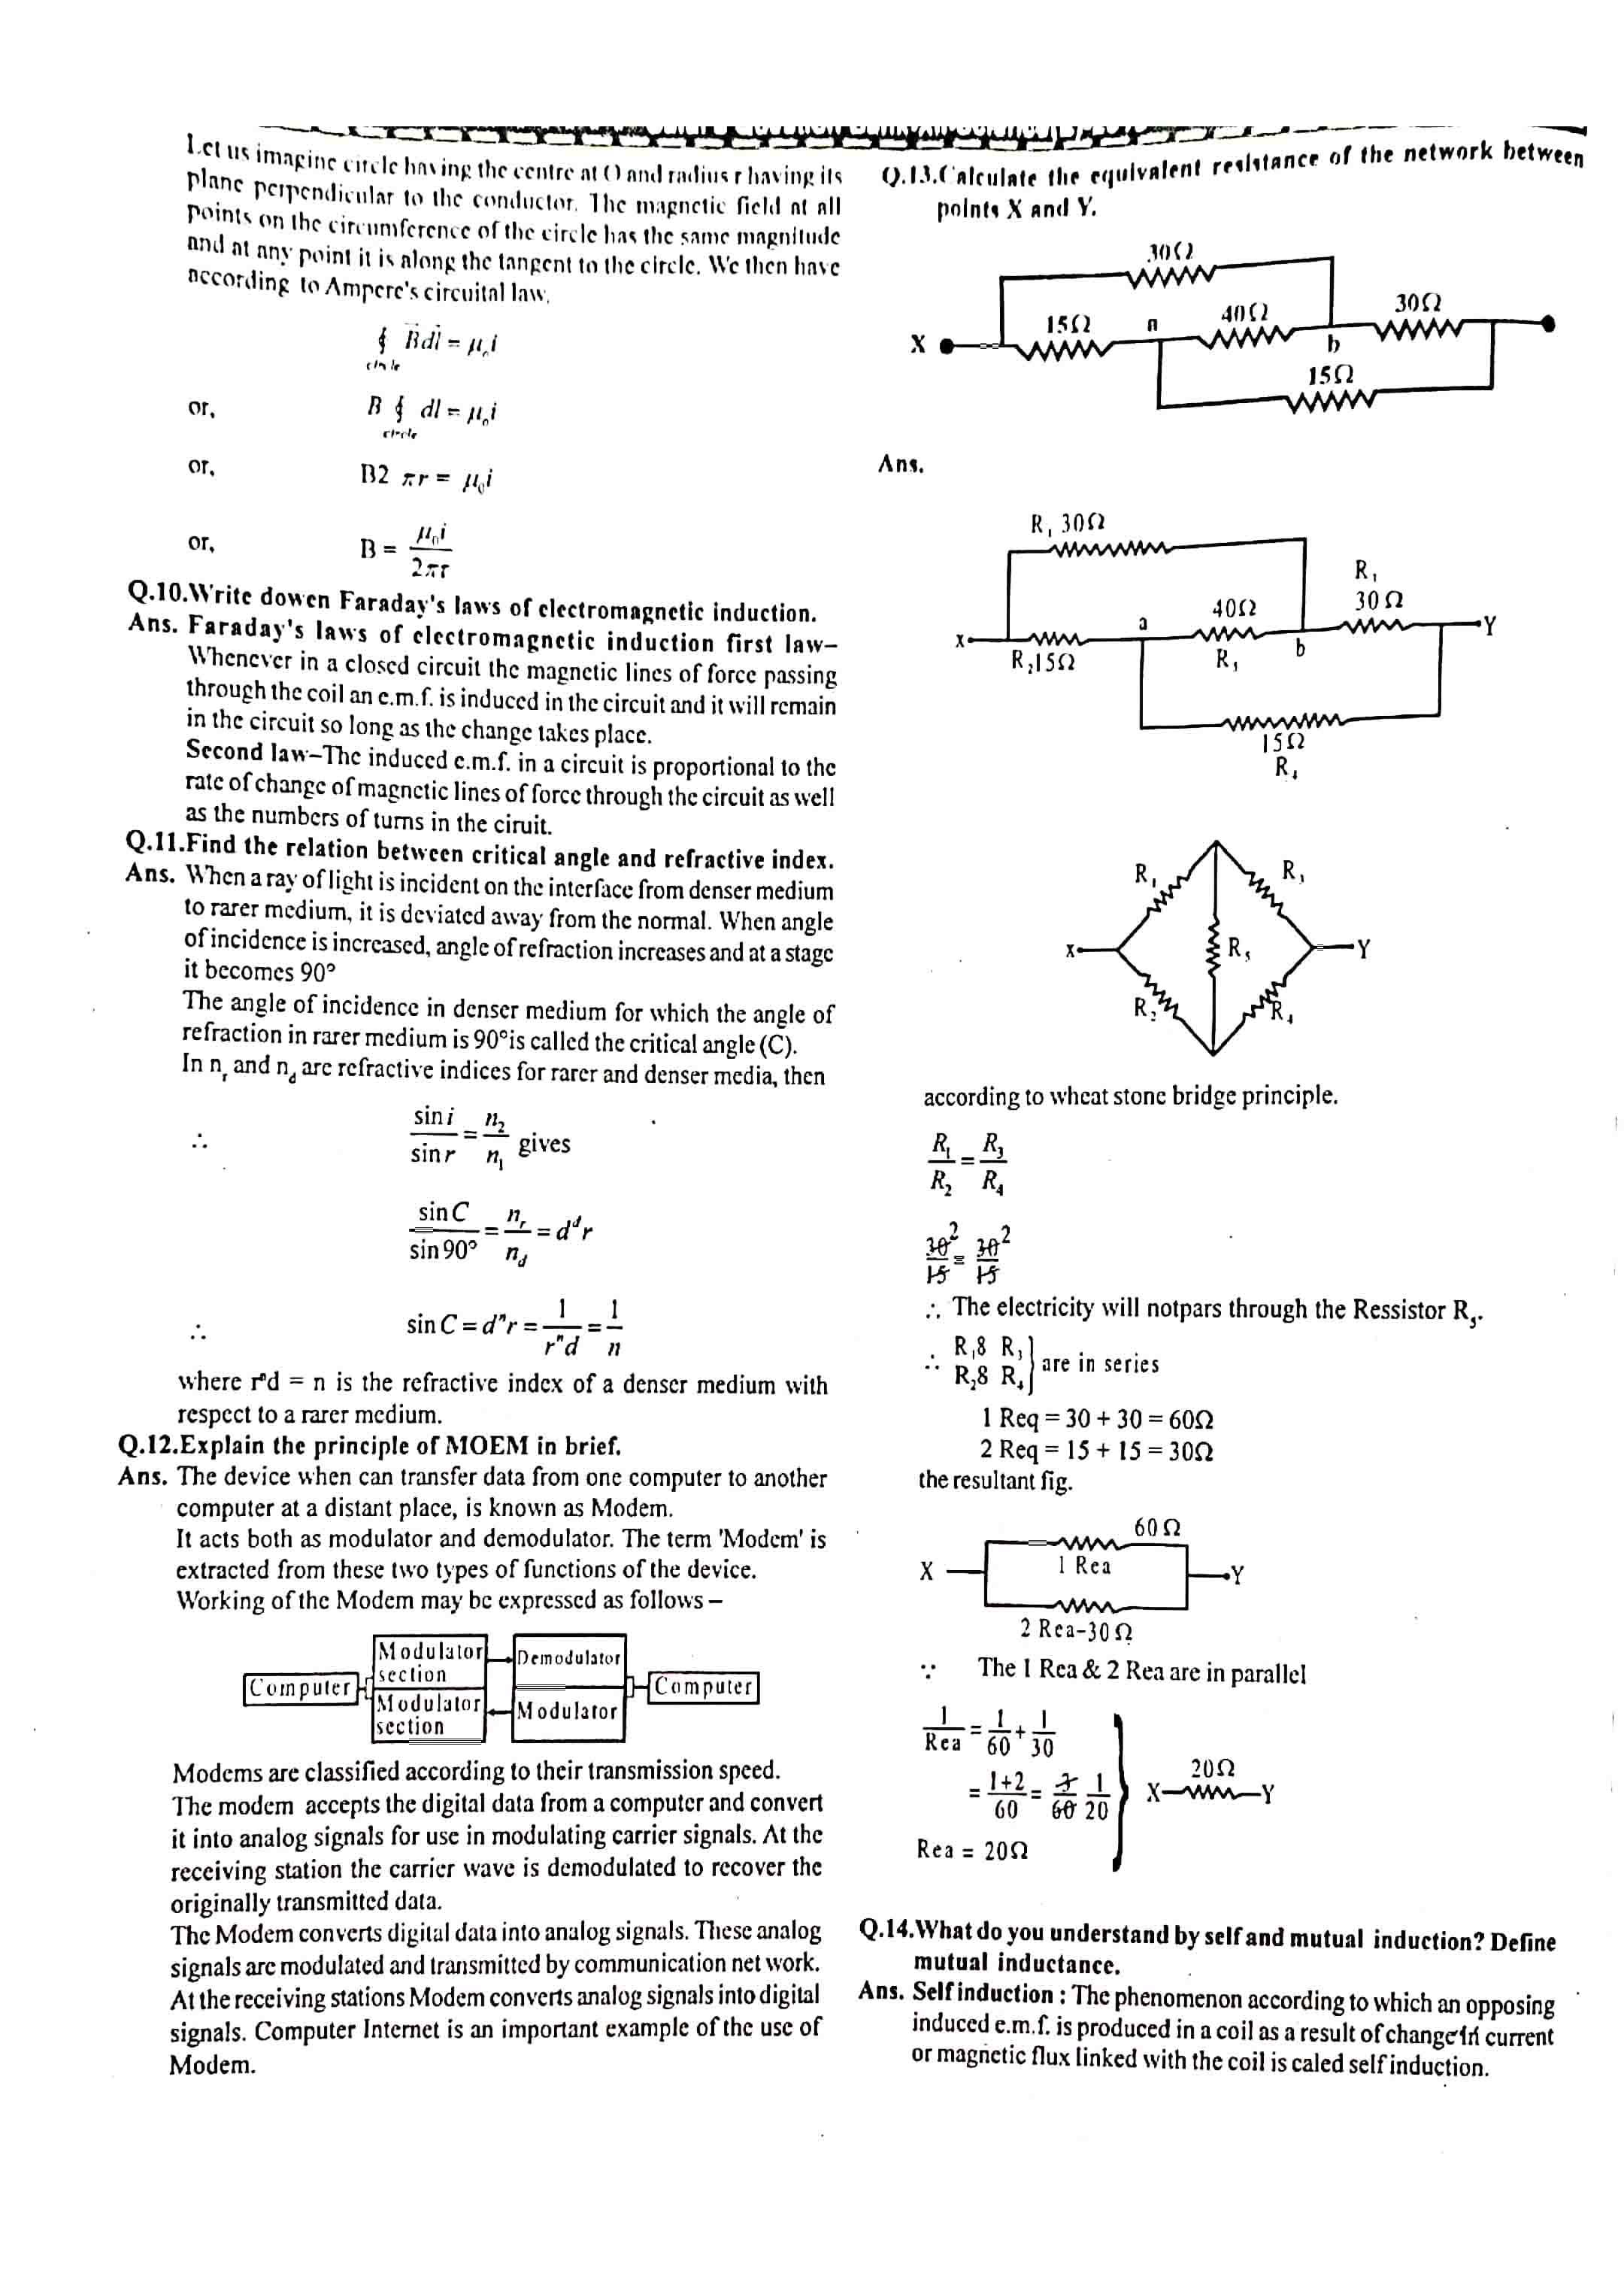 JAC Class 12 Physics 2013 Question Paper 02